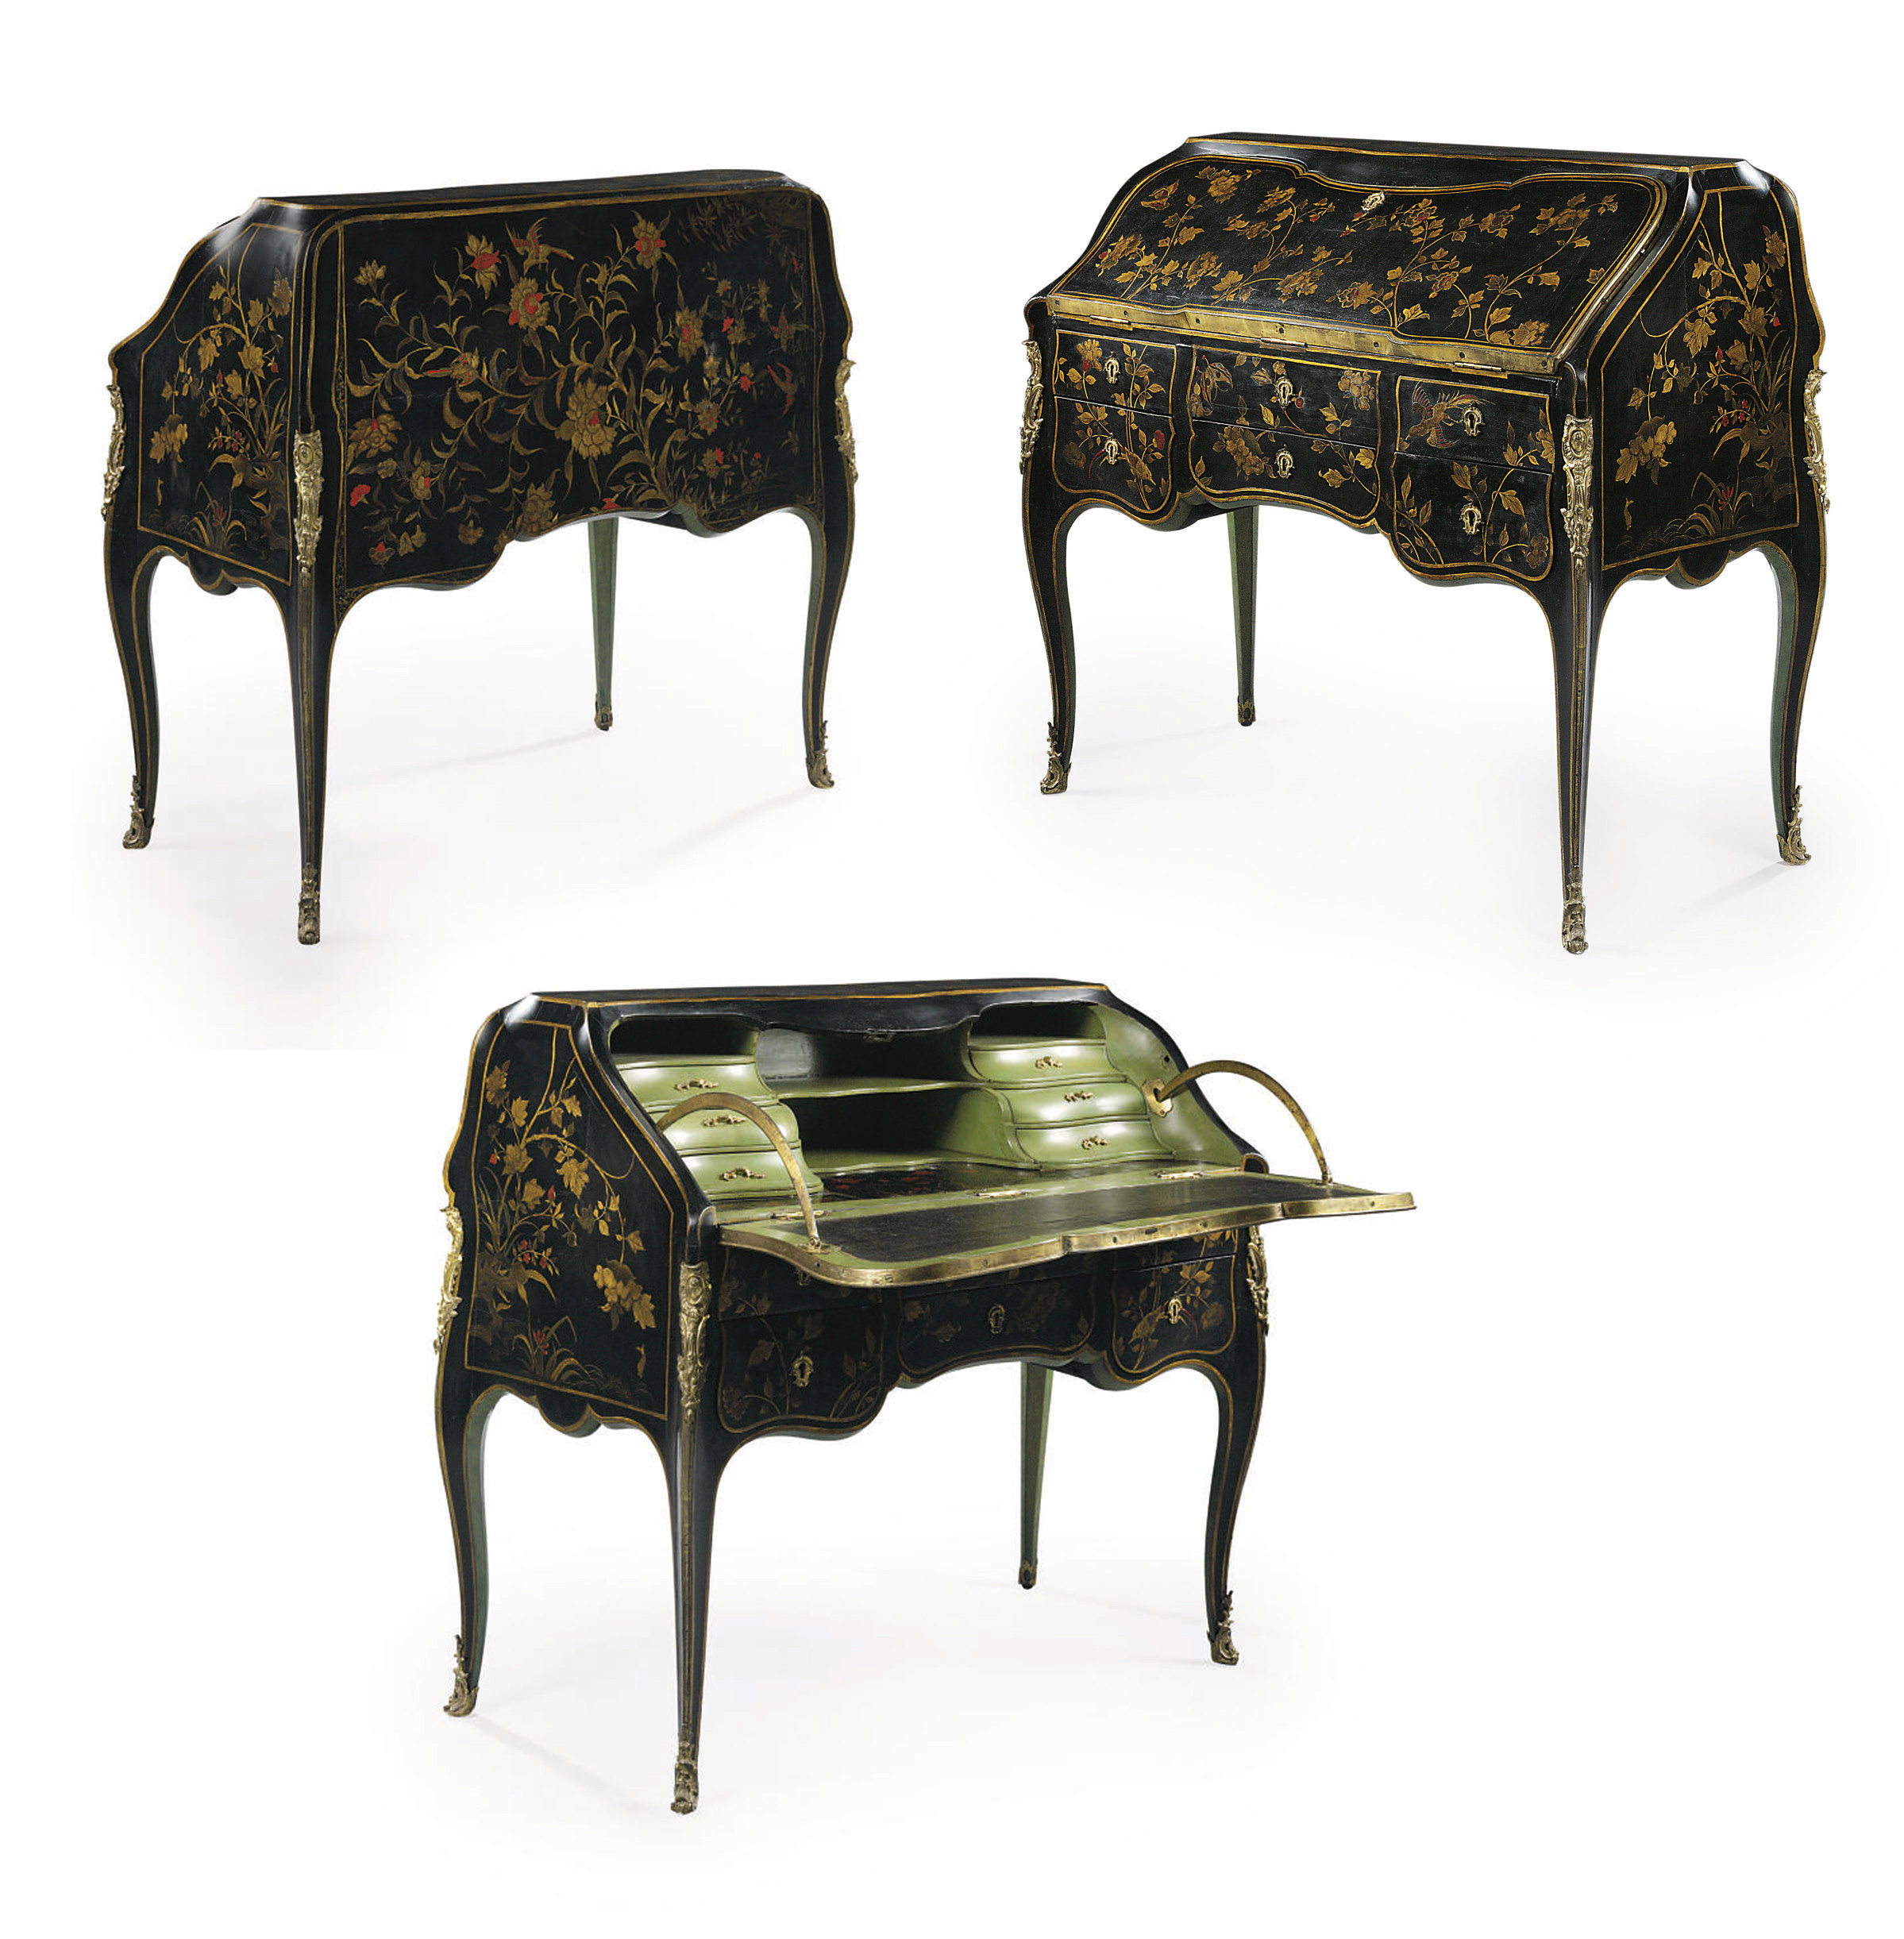 A LOUIS XV ORMOLU-MOUNTED BLACK AND GILT CHINESE LACQUER BUREAU DE PENTE